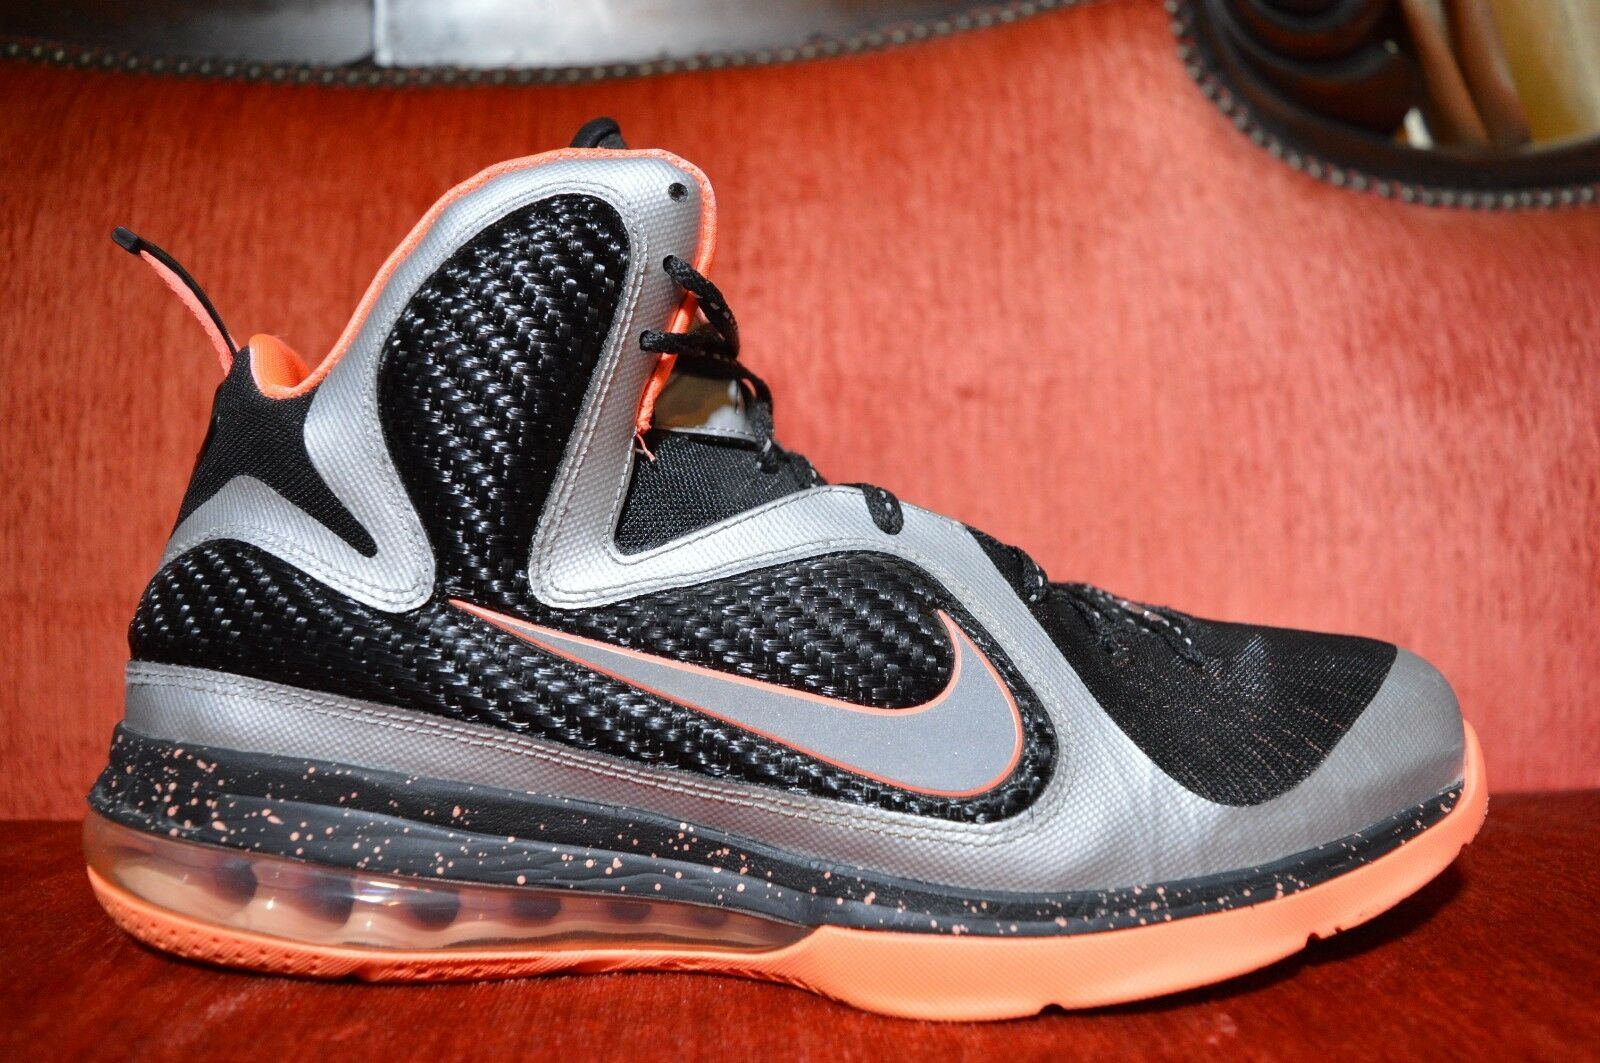 Pulire nike air lebron ix 9 mango 469764 005 james basket 46